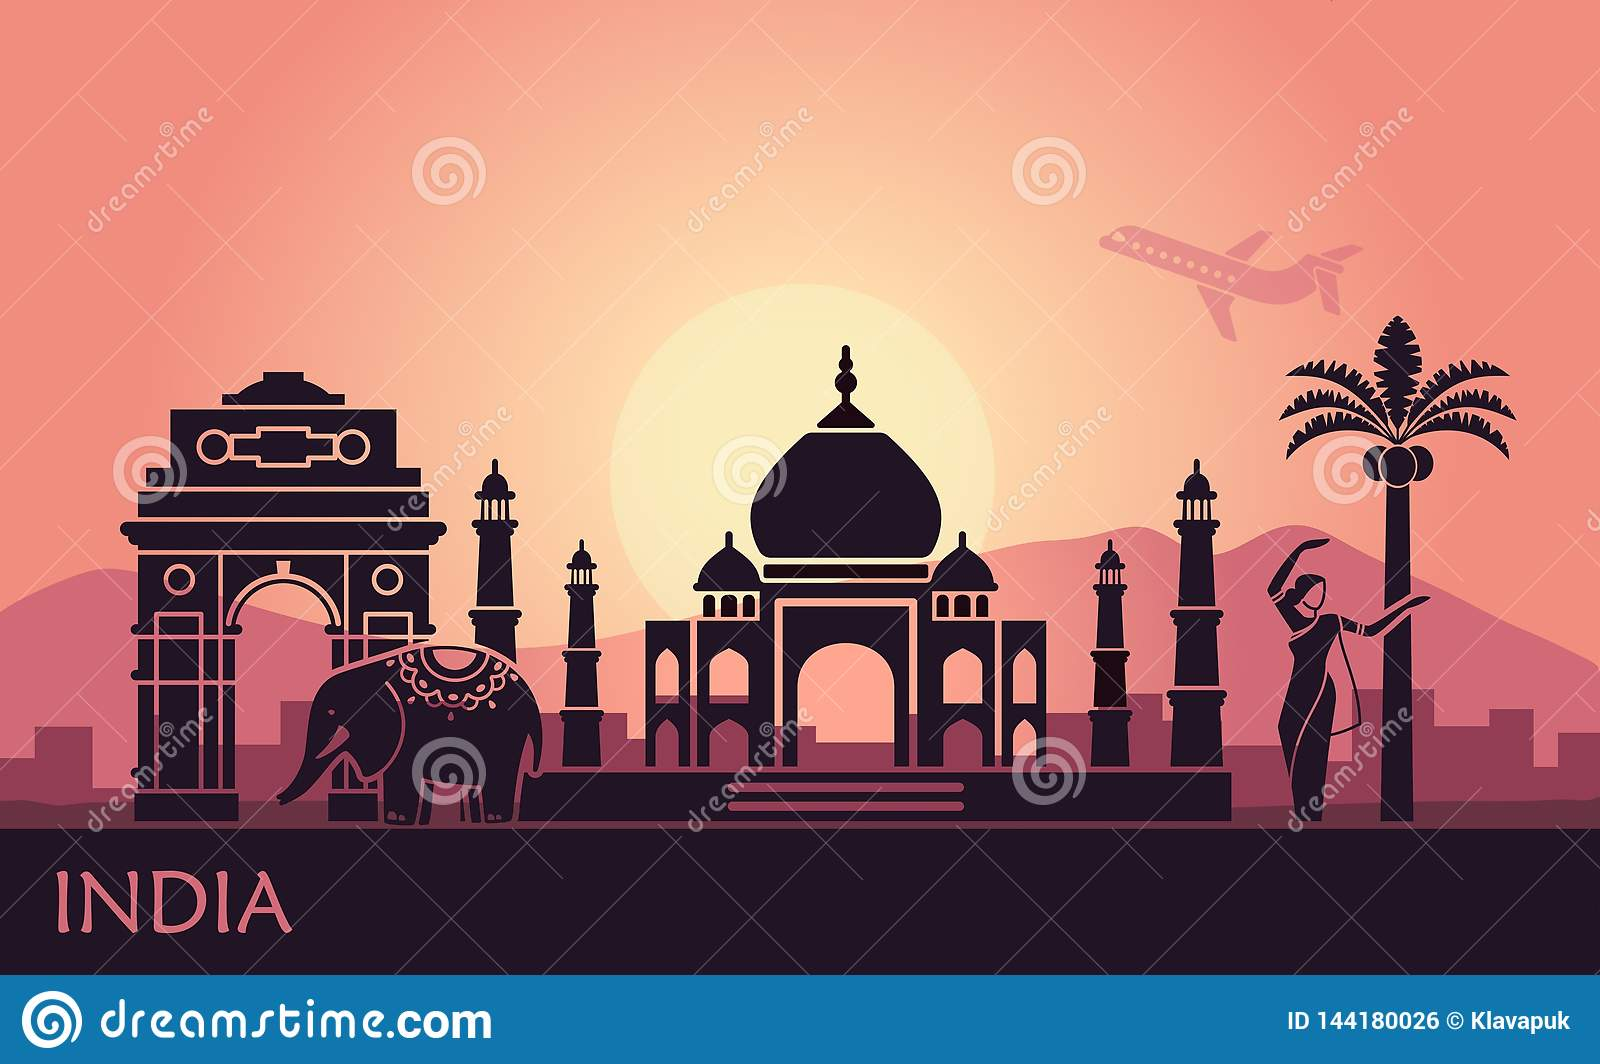 Abstract landscape with the sights of India and a dancing woman